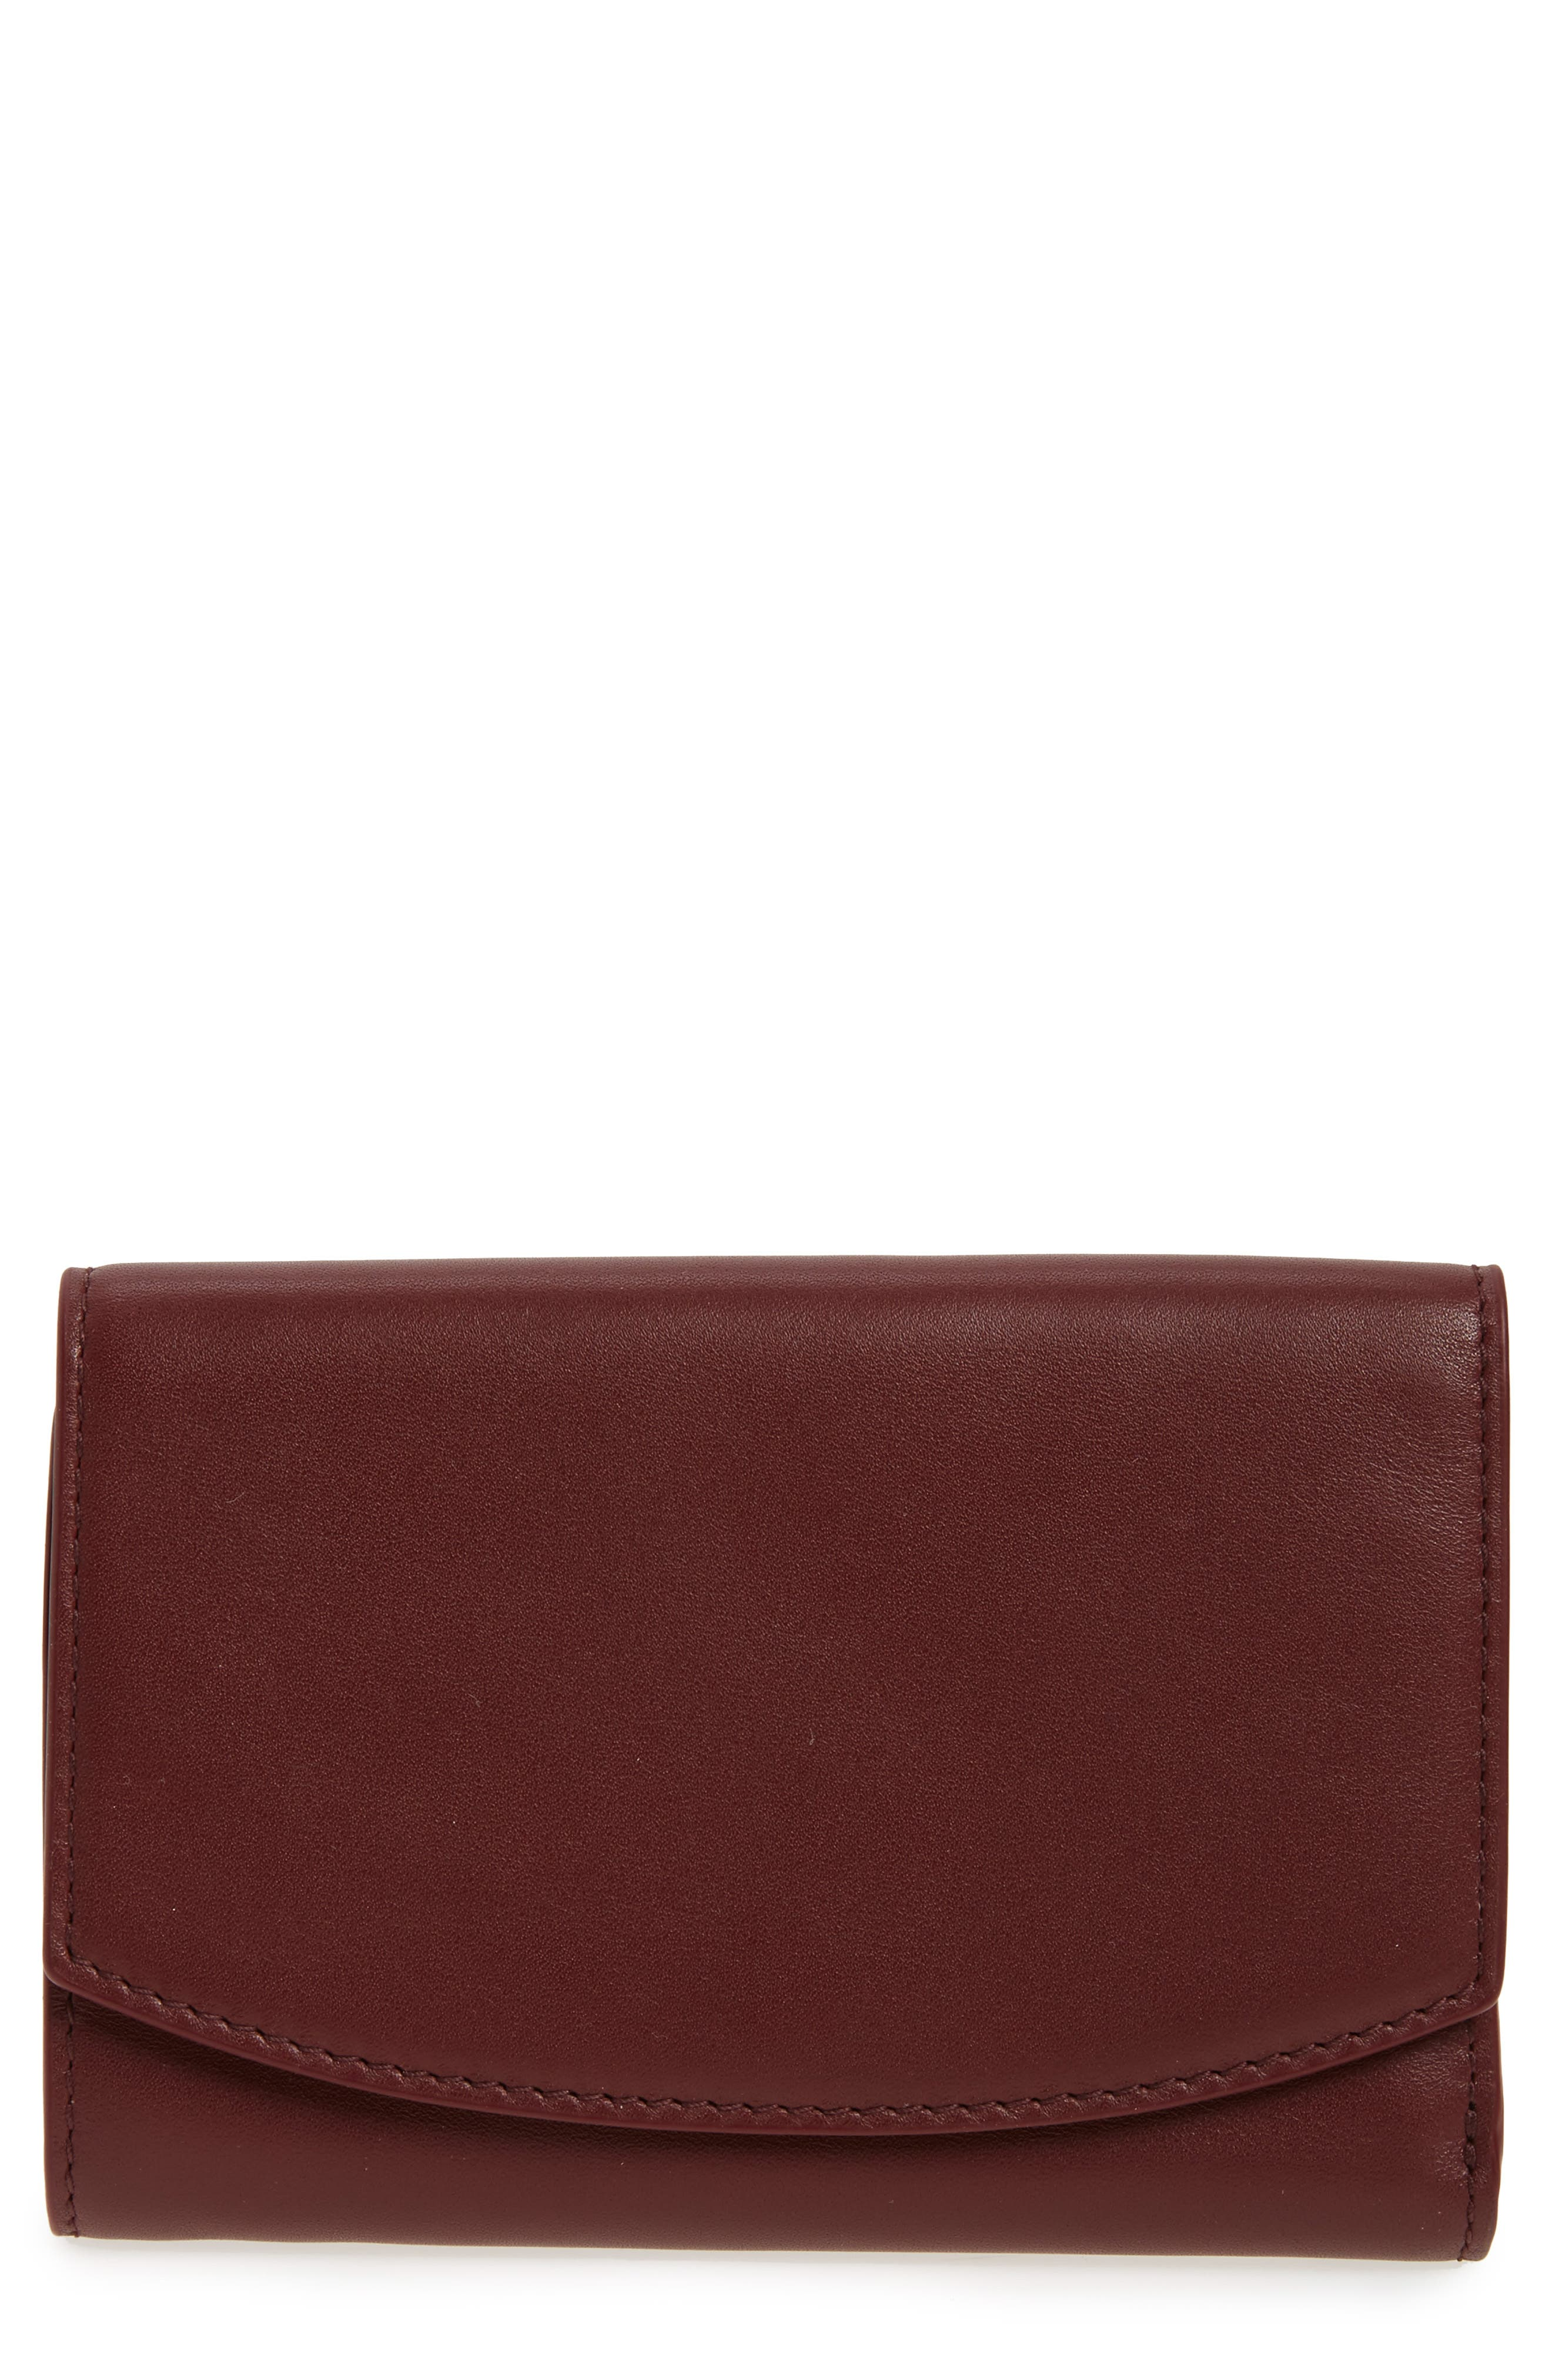 Alternate Image 1 Selected - Skagen Compact Flap Leather Wallet